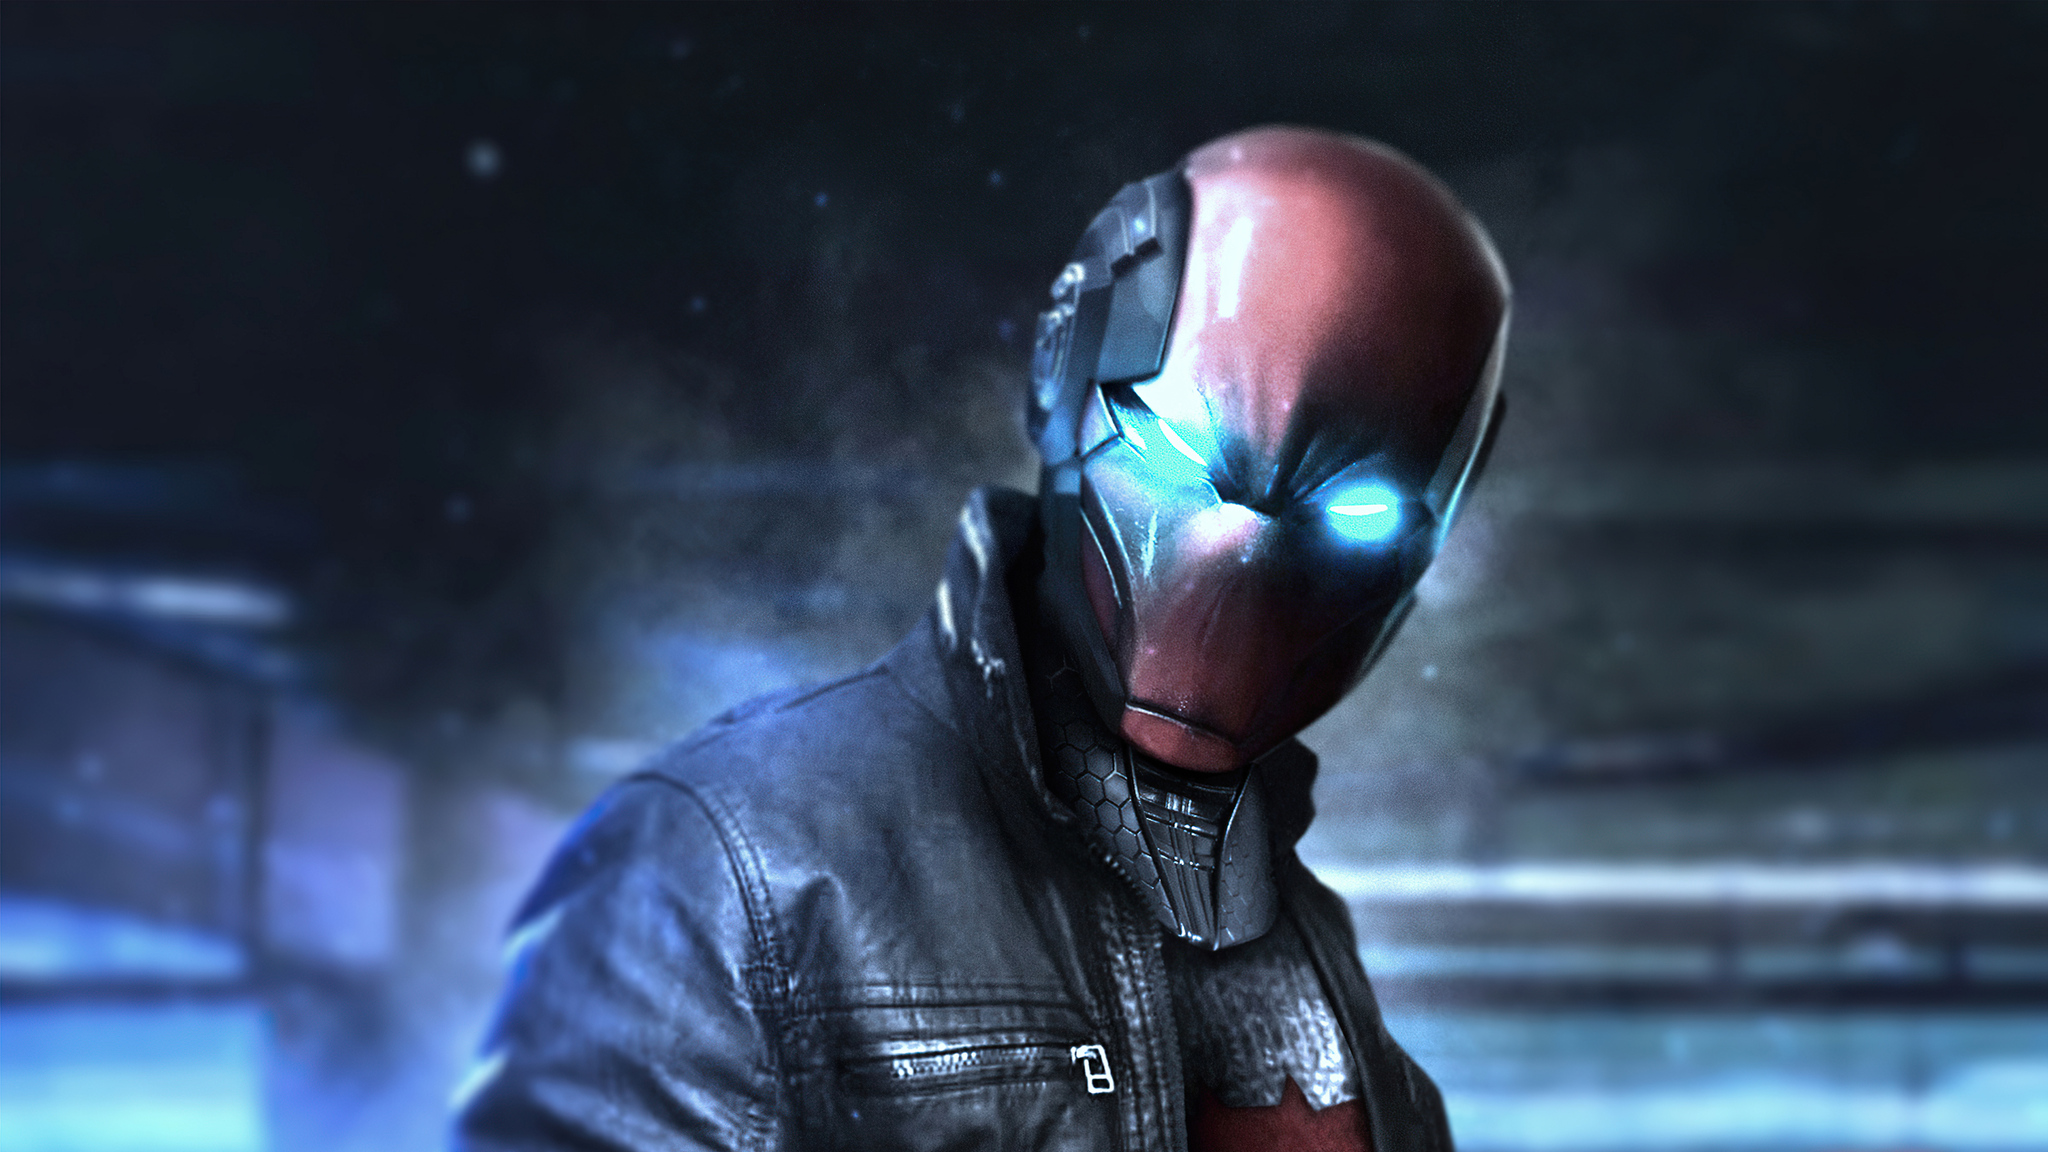 the-red-hood-glowing-eyes-4k-gx.jpg